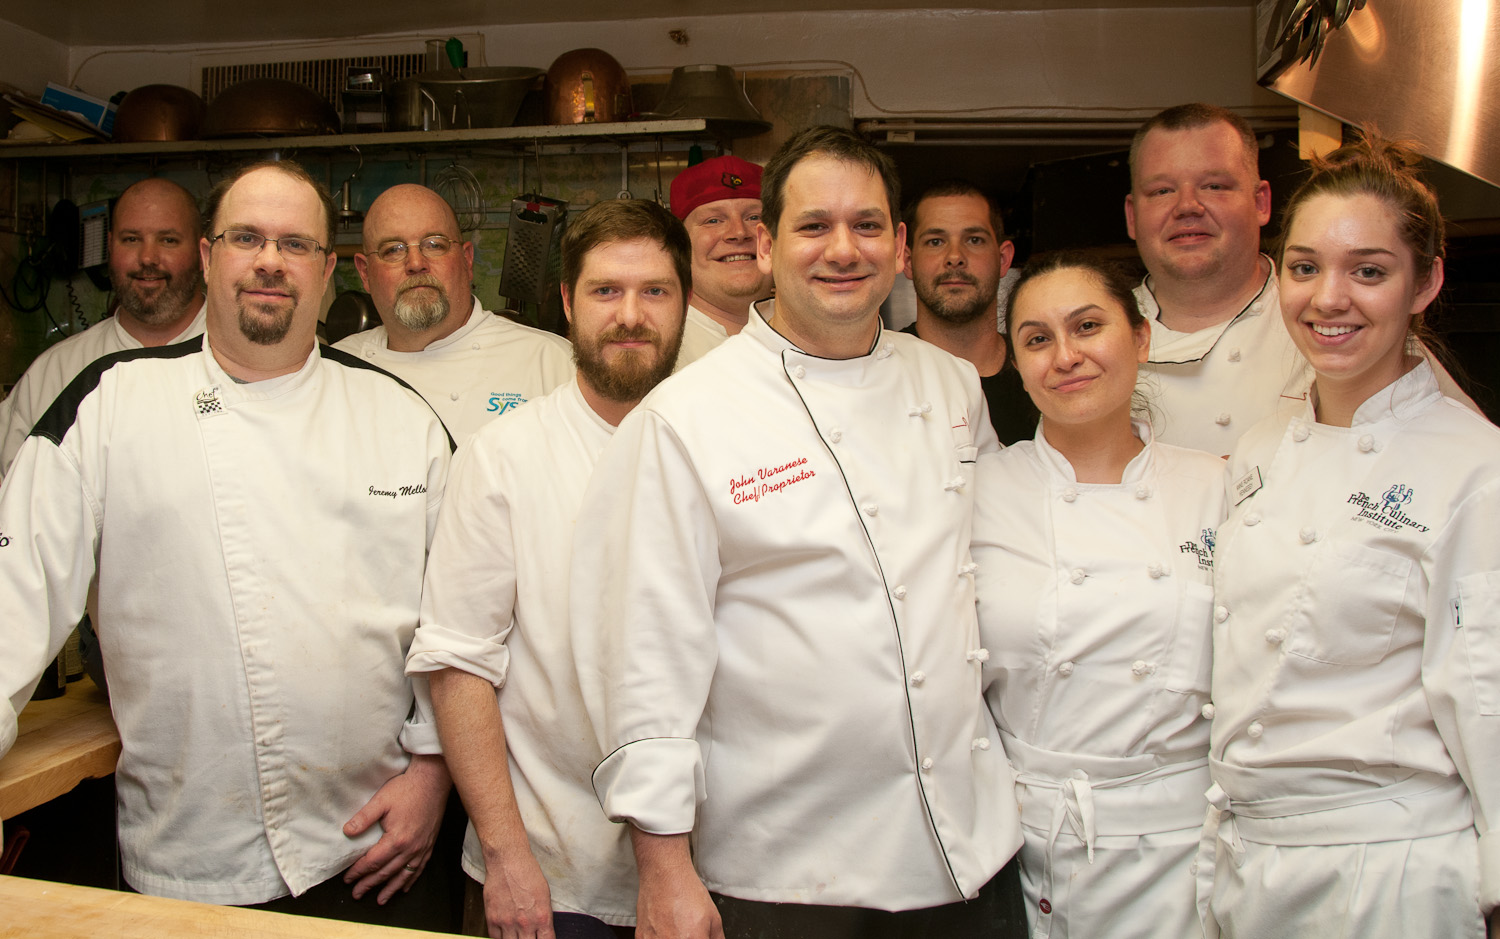 Chef John Varanese and his team in the Beard House kitchen